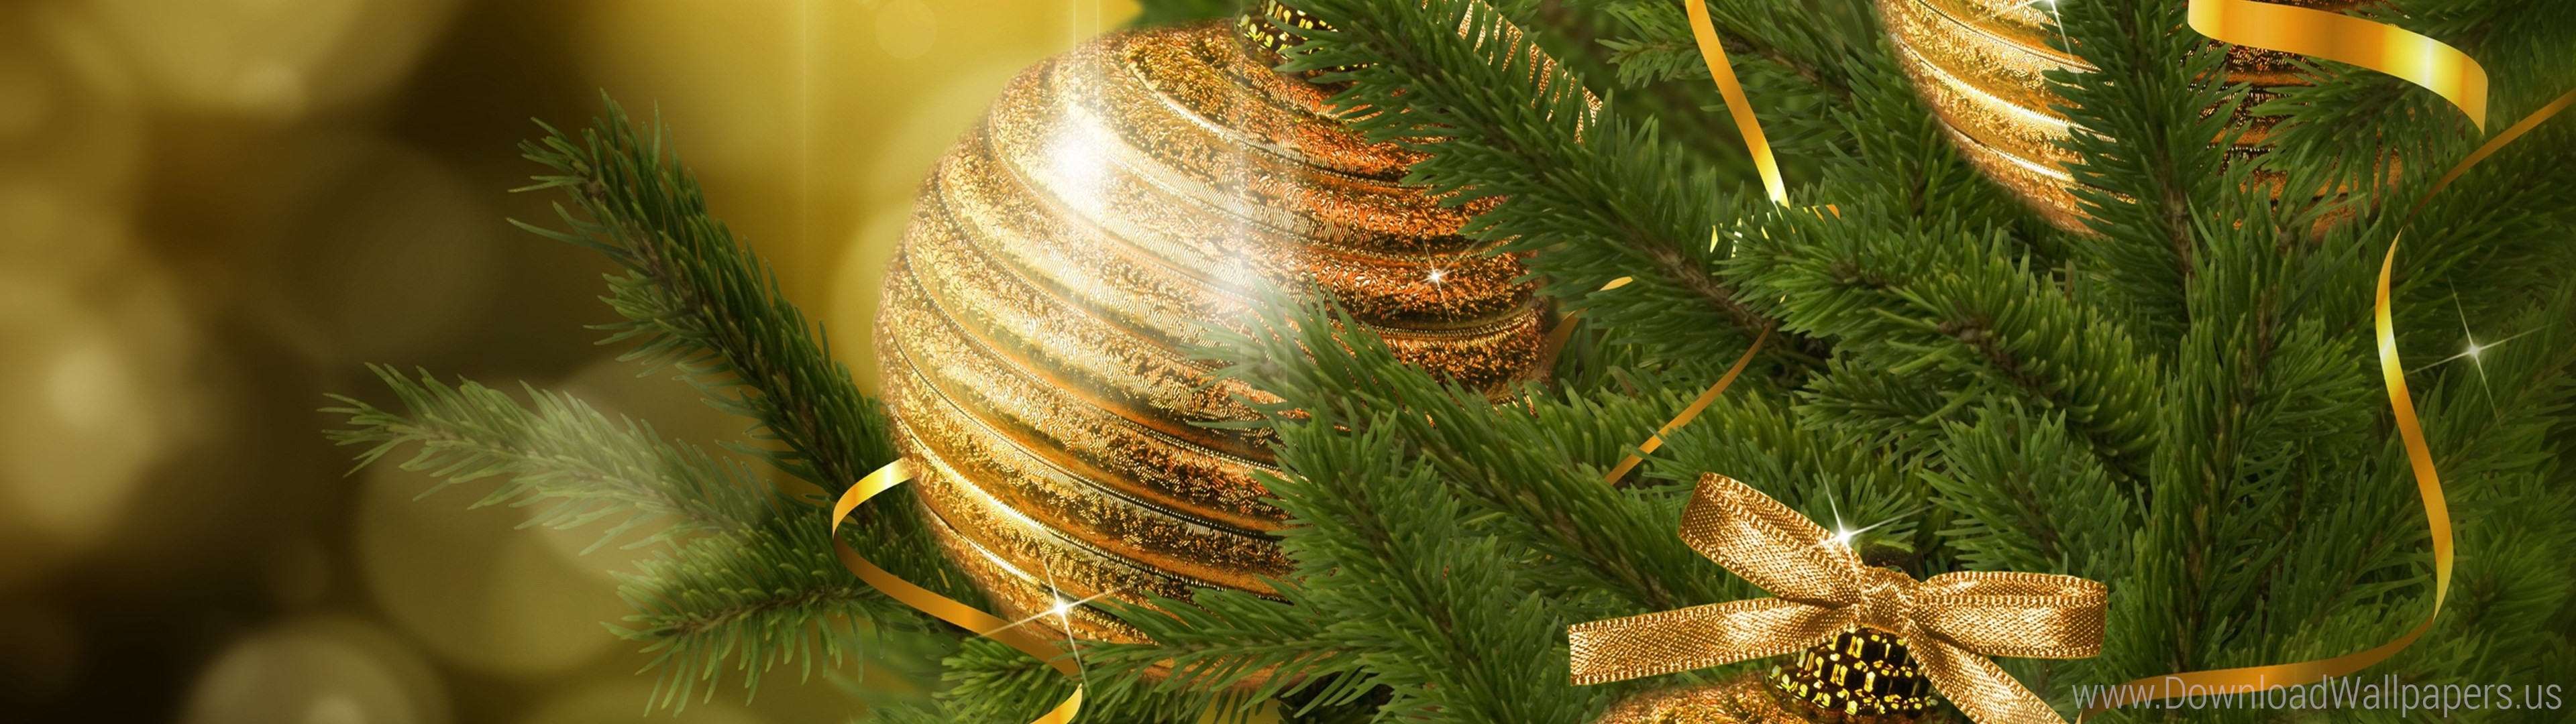 3840x1080 Christmas Wallpaper 79 Images